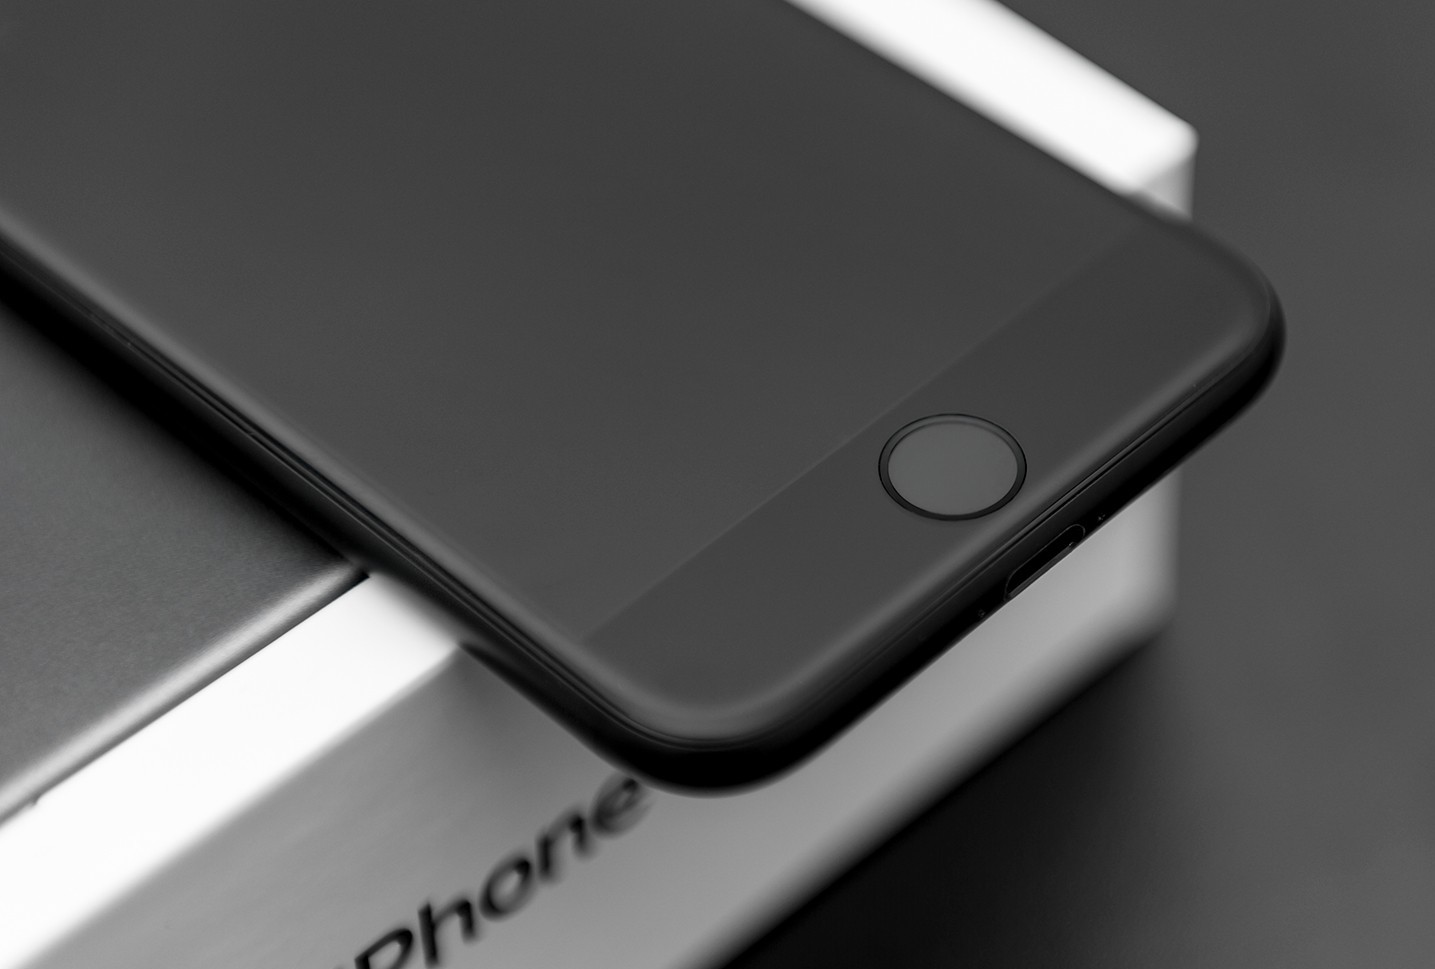 apple-solution-iphone-7-home-button